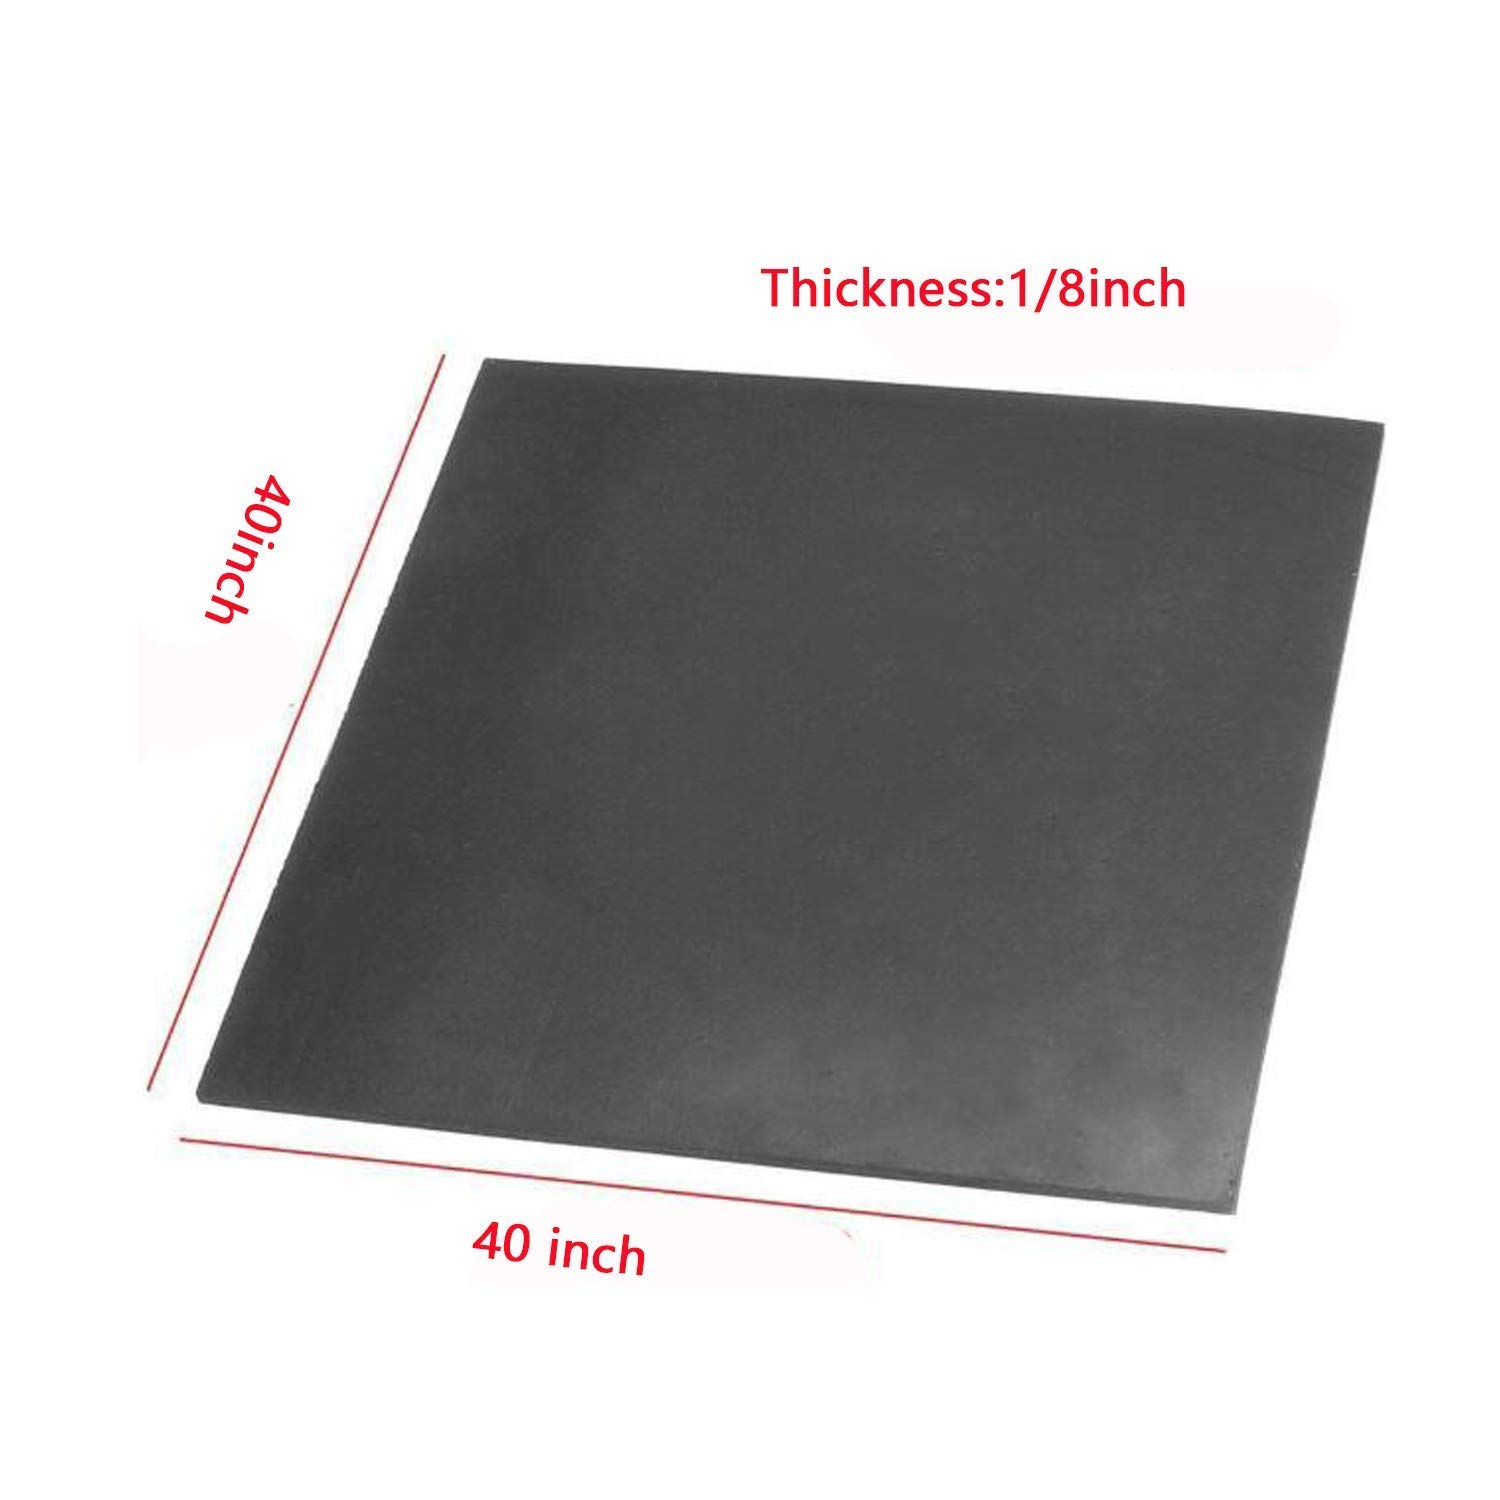 1//8 lehom Black Rubber Sheet Roll Warehouse .125 inch Thick x 40 in x 40 in Heavy Duty Heat Resistant Pad for Gaskets DIY Material Supports Leveling Sealing Bumpers Protection Abrasion Flooring